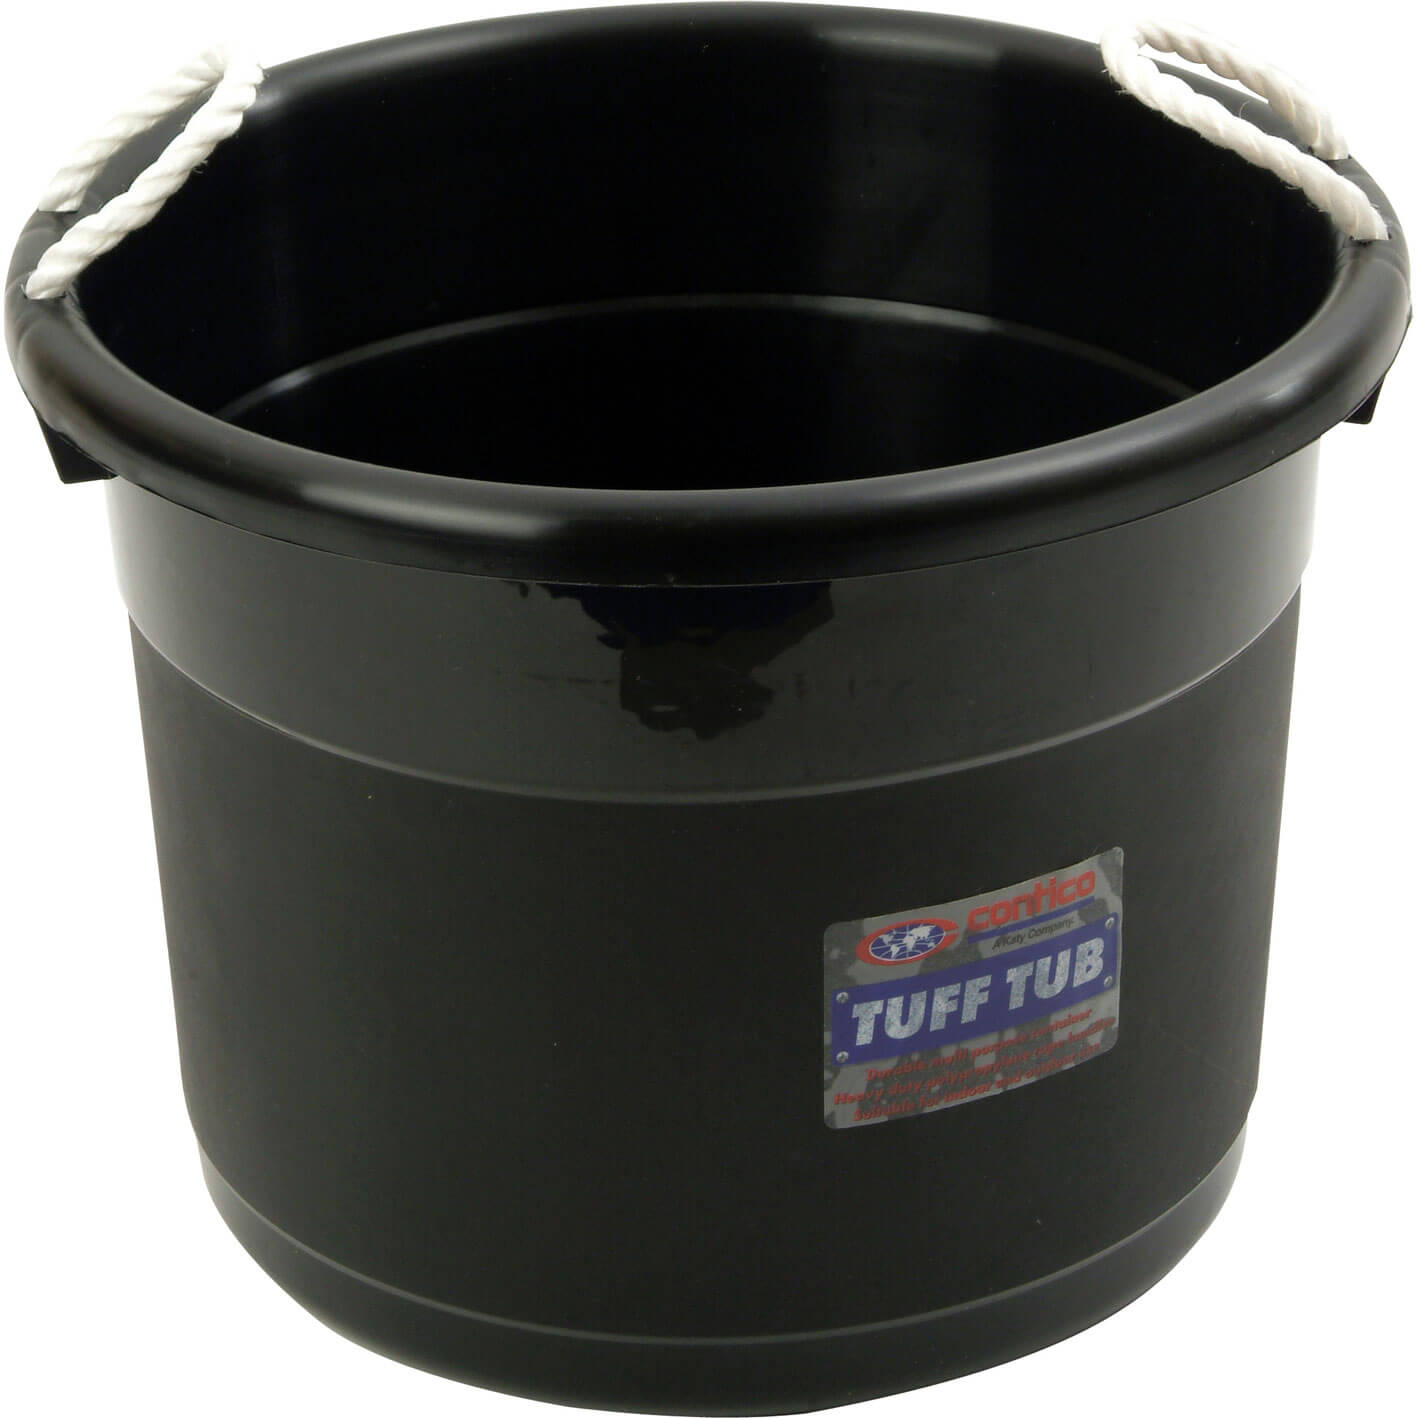 Image of Contico Tuff Tub Muck Bucket 69l